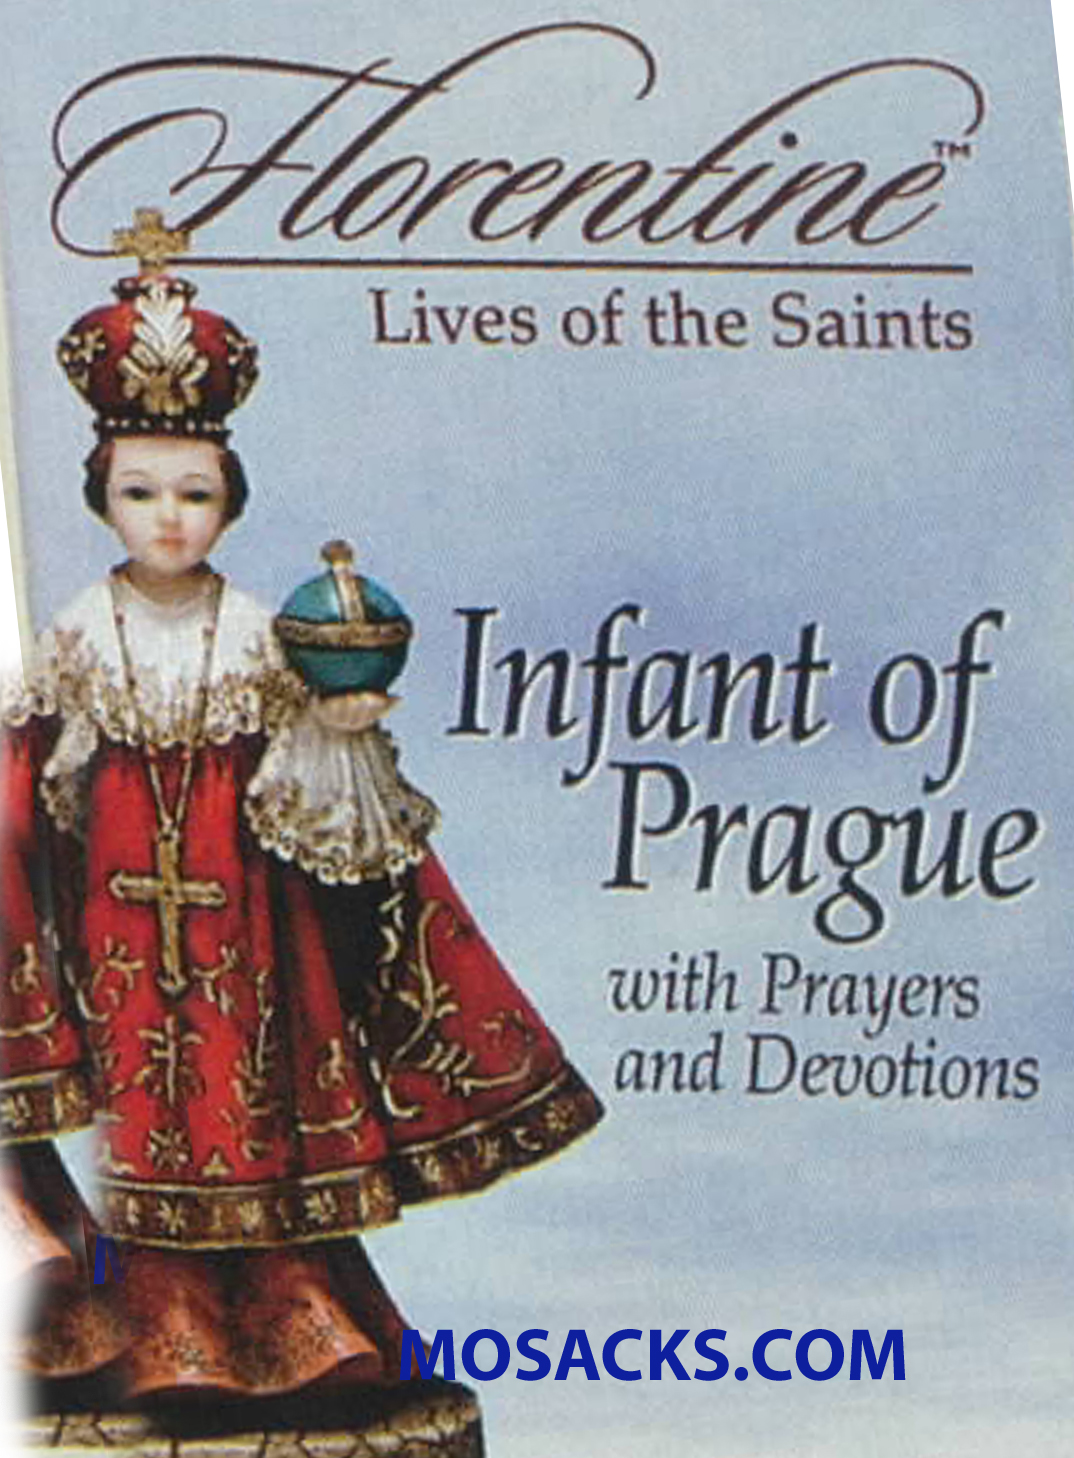 Florentine Lives of The Saints: Infant of Prague 306-11310